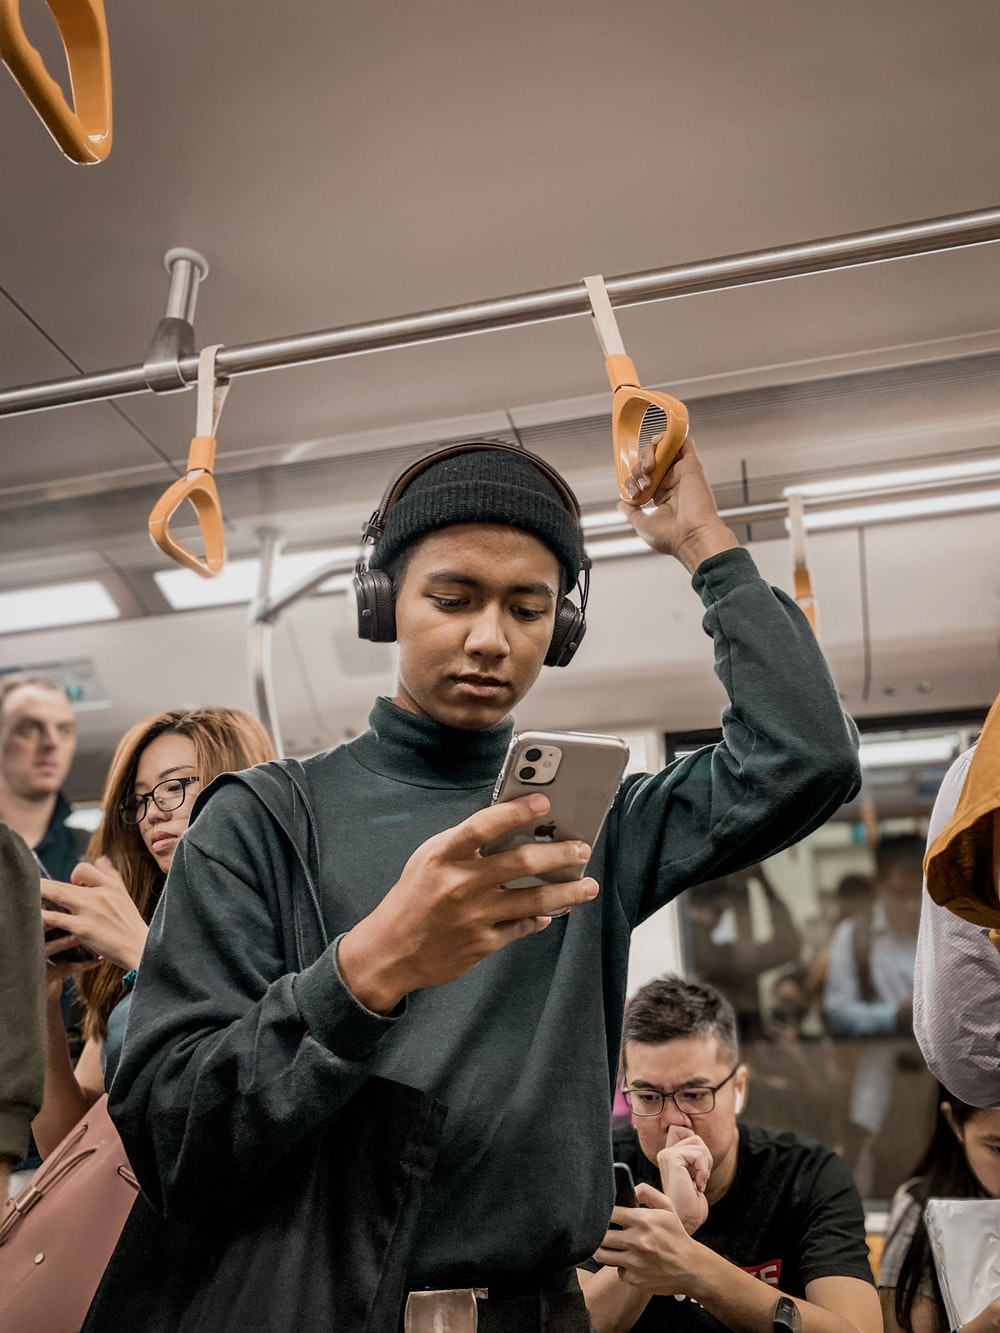 man in train holding smartphone